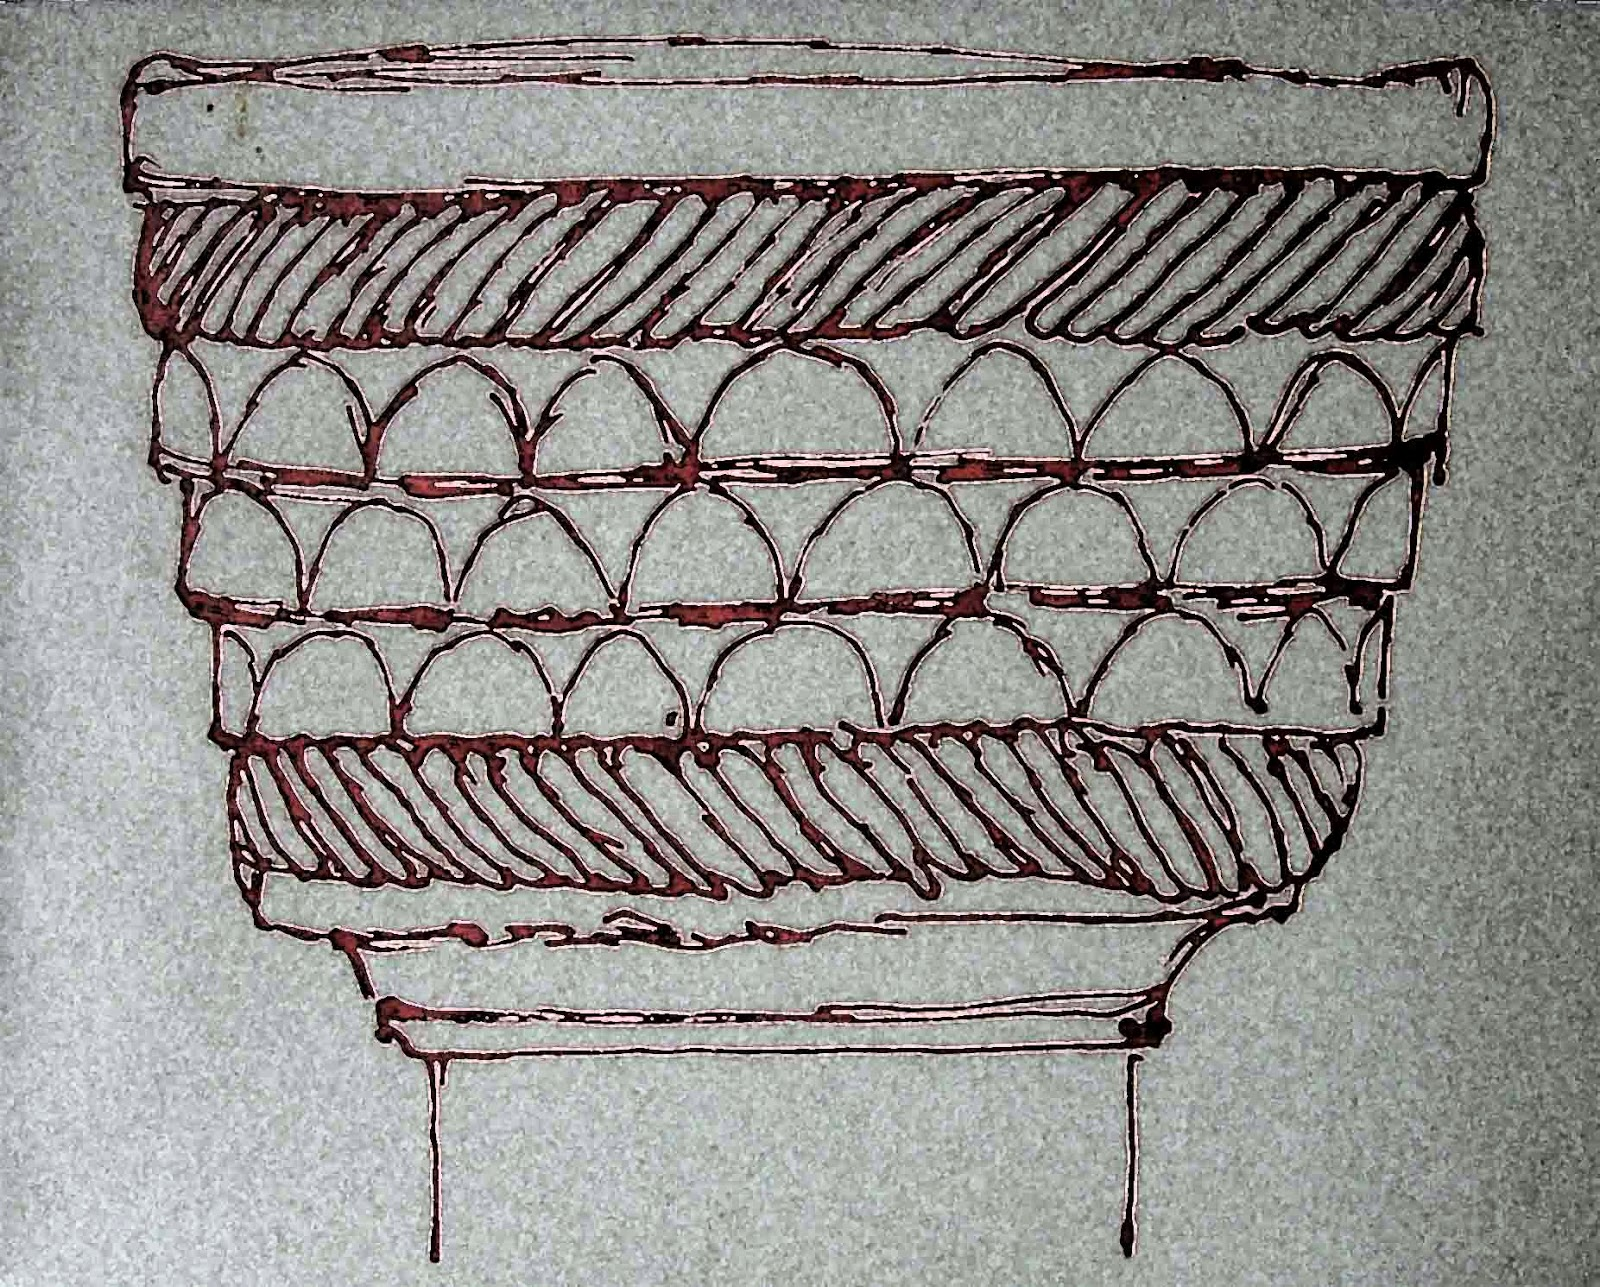 Norman font with scale design at Bremhill, Wiltshire